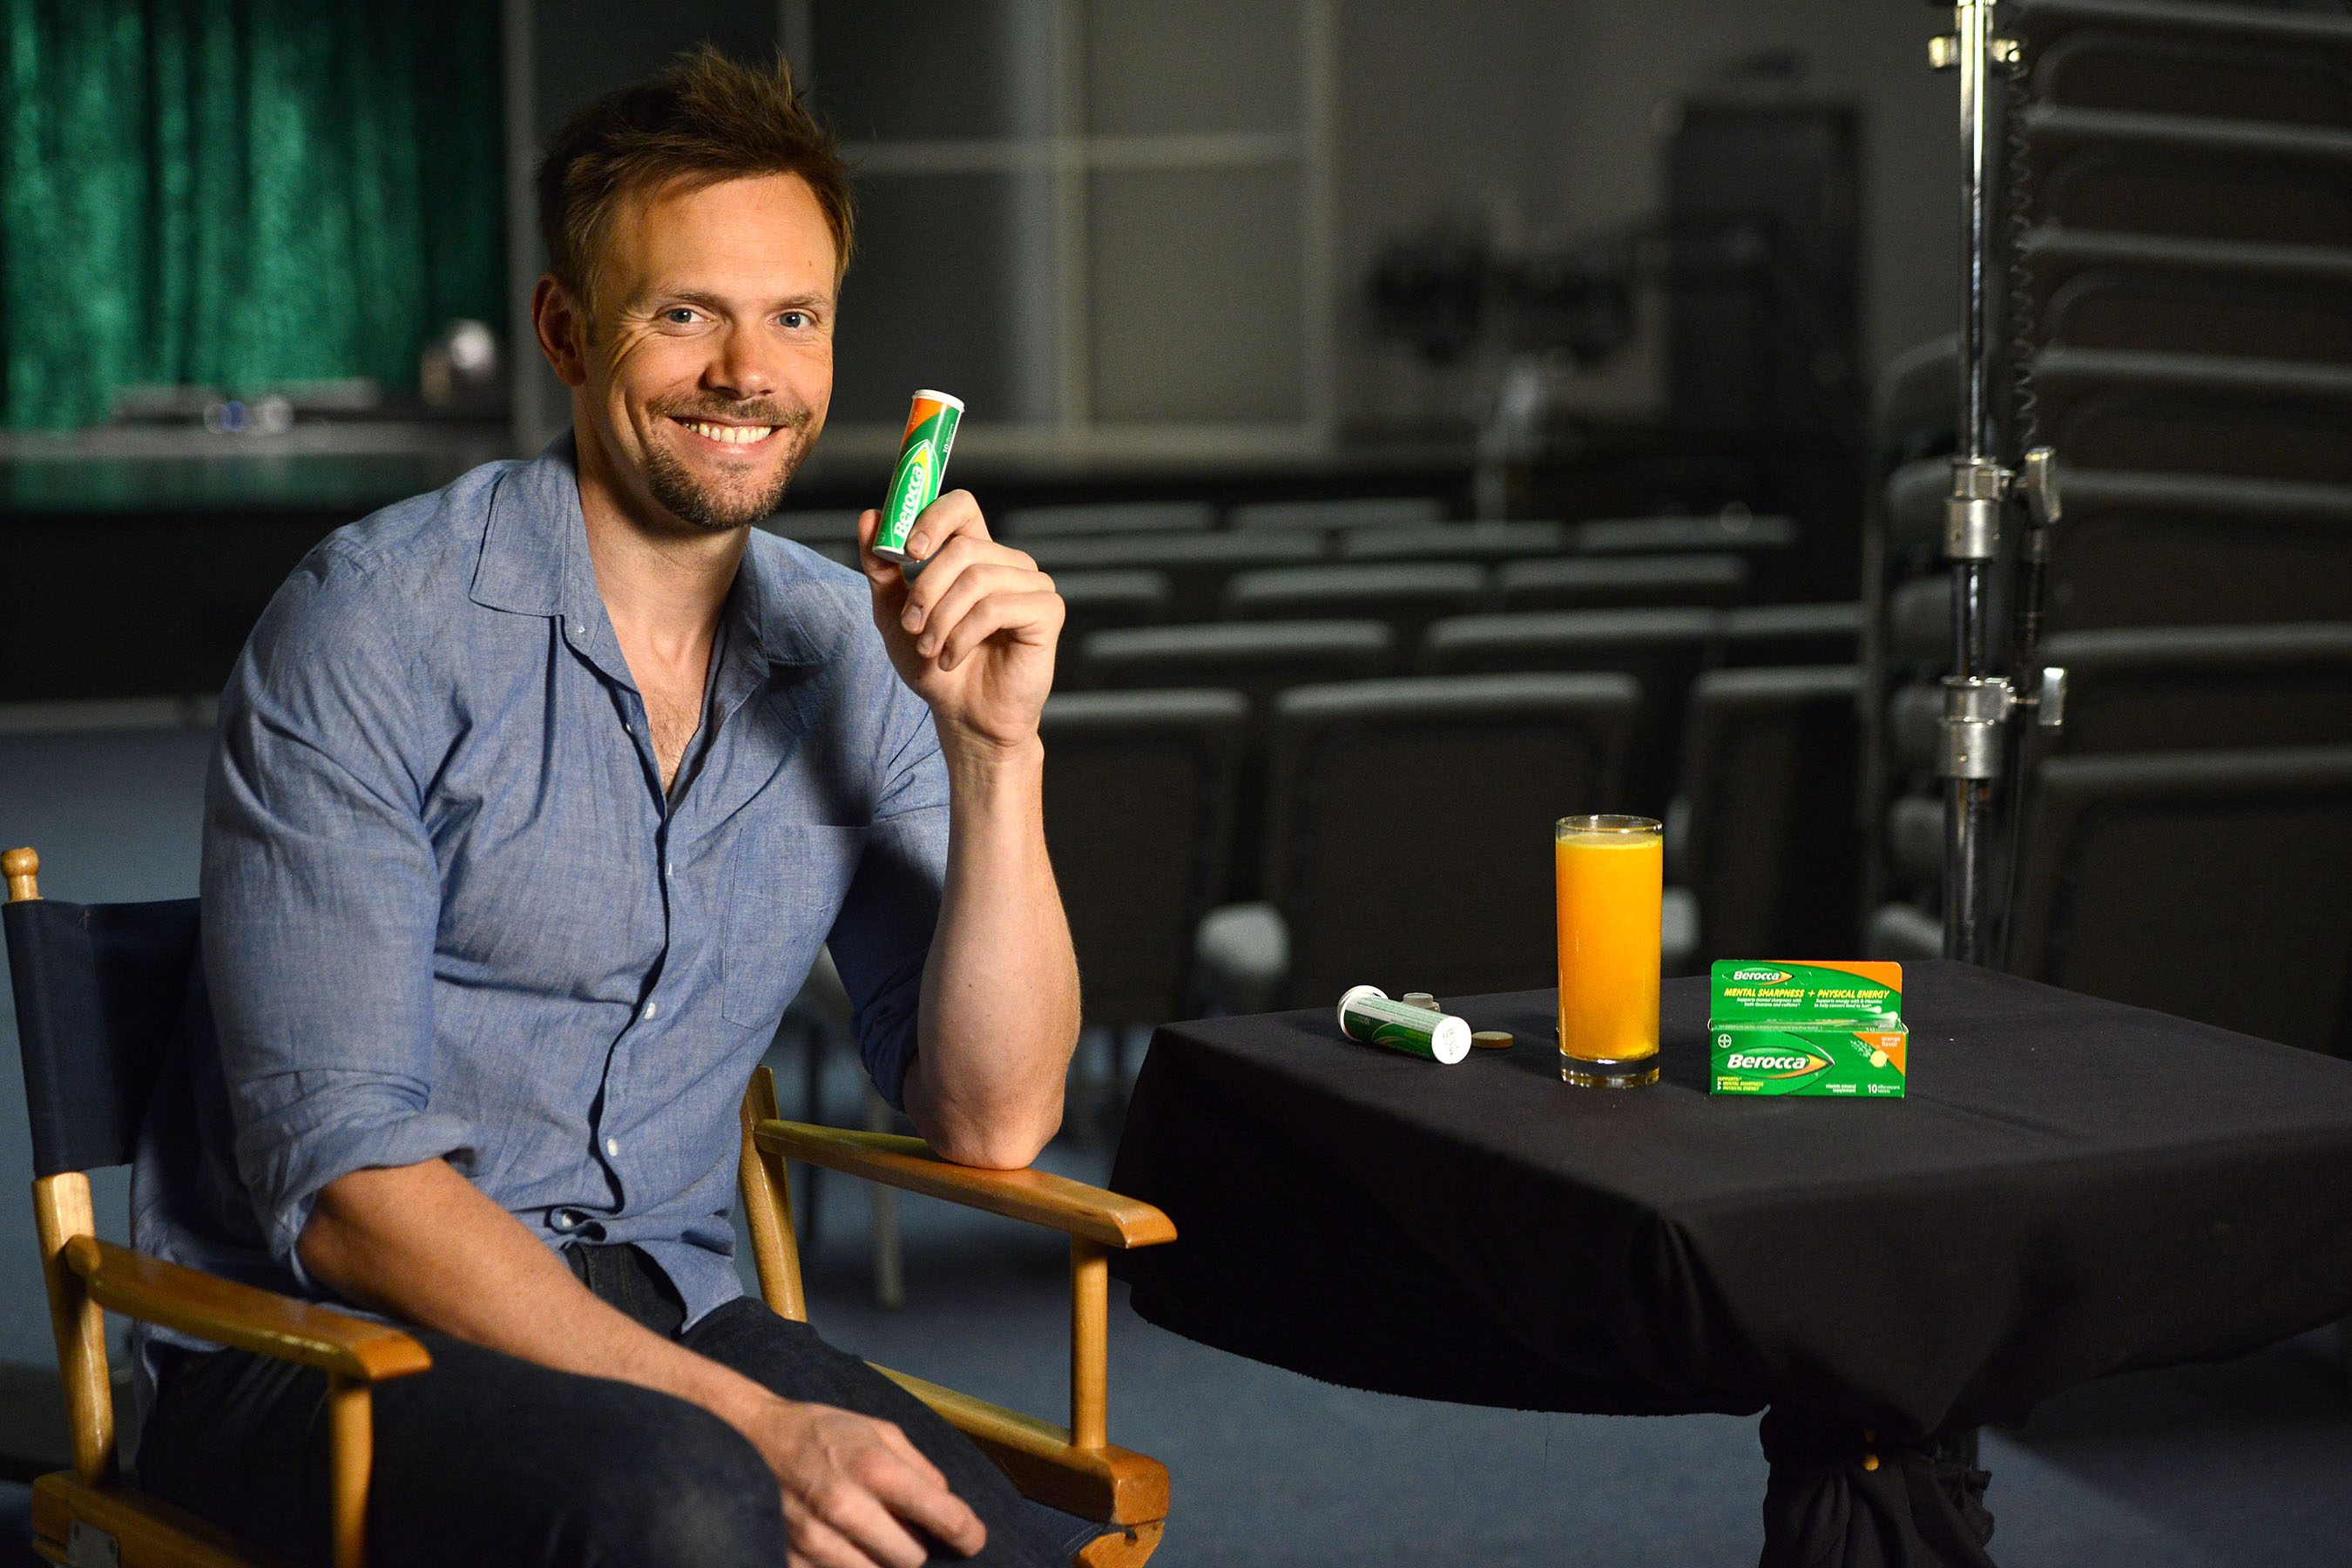 There's Something in the Water: Global Icon, Berocca®, Arrives on U.S. Soil with New Special Formula and Flavor